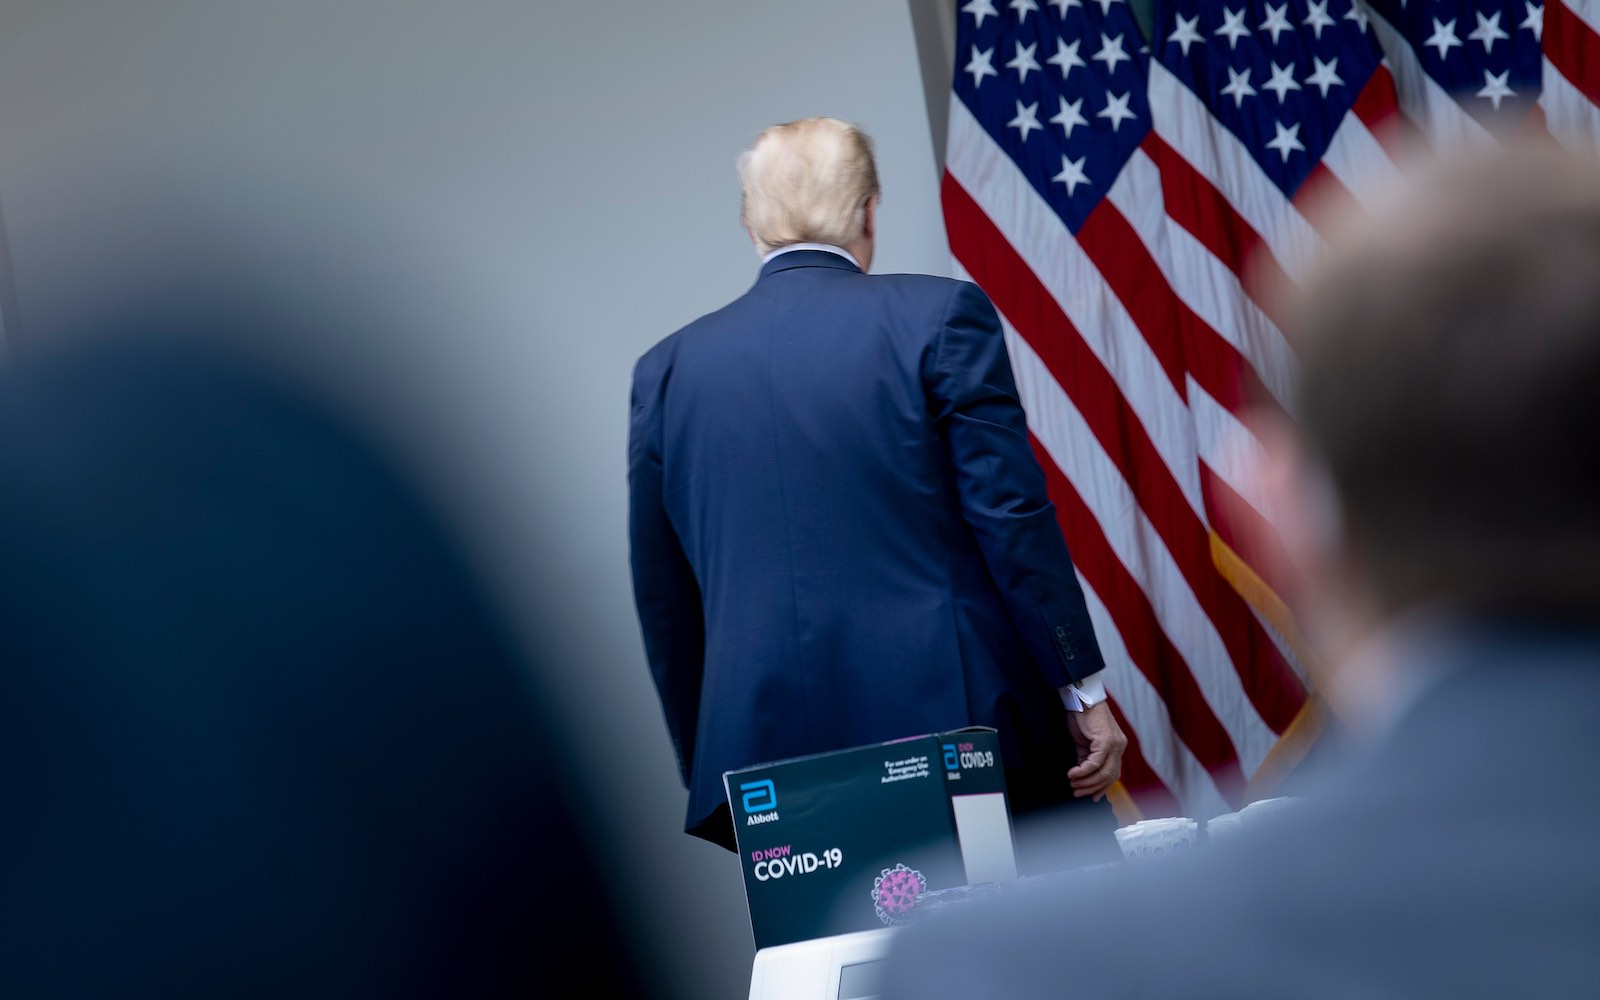 US President Donald Trump walks out of a news conference on Covid-19 held in the Rose Garden of the White House, Washington, 11 May (Brendan Smialowski/AFP via Getty Images)